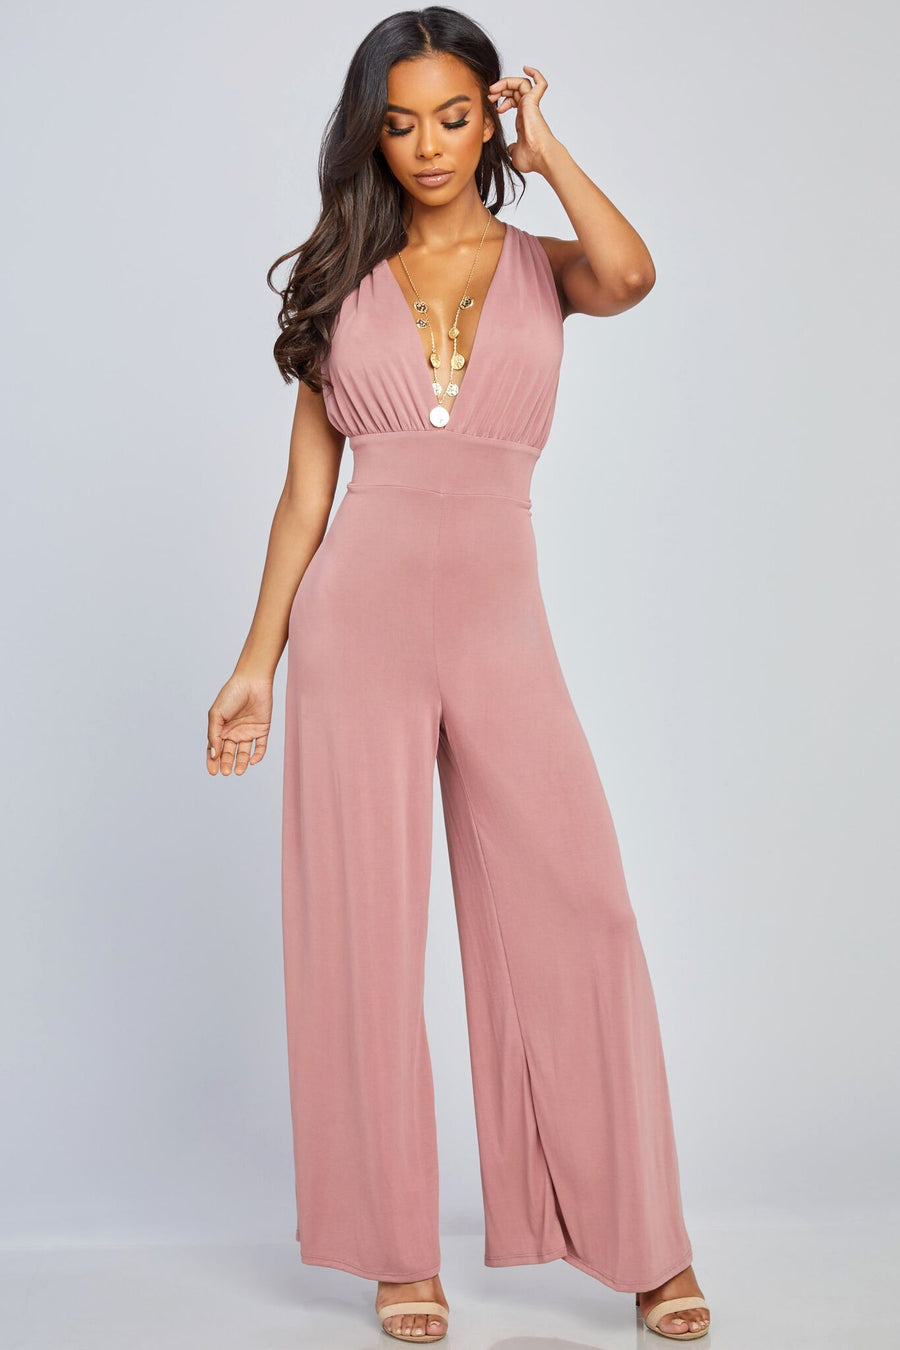 Putting On A Show Jumpsuit